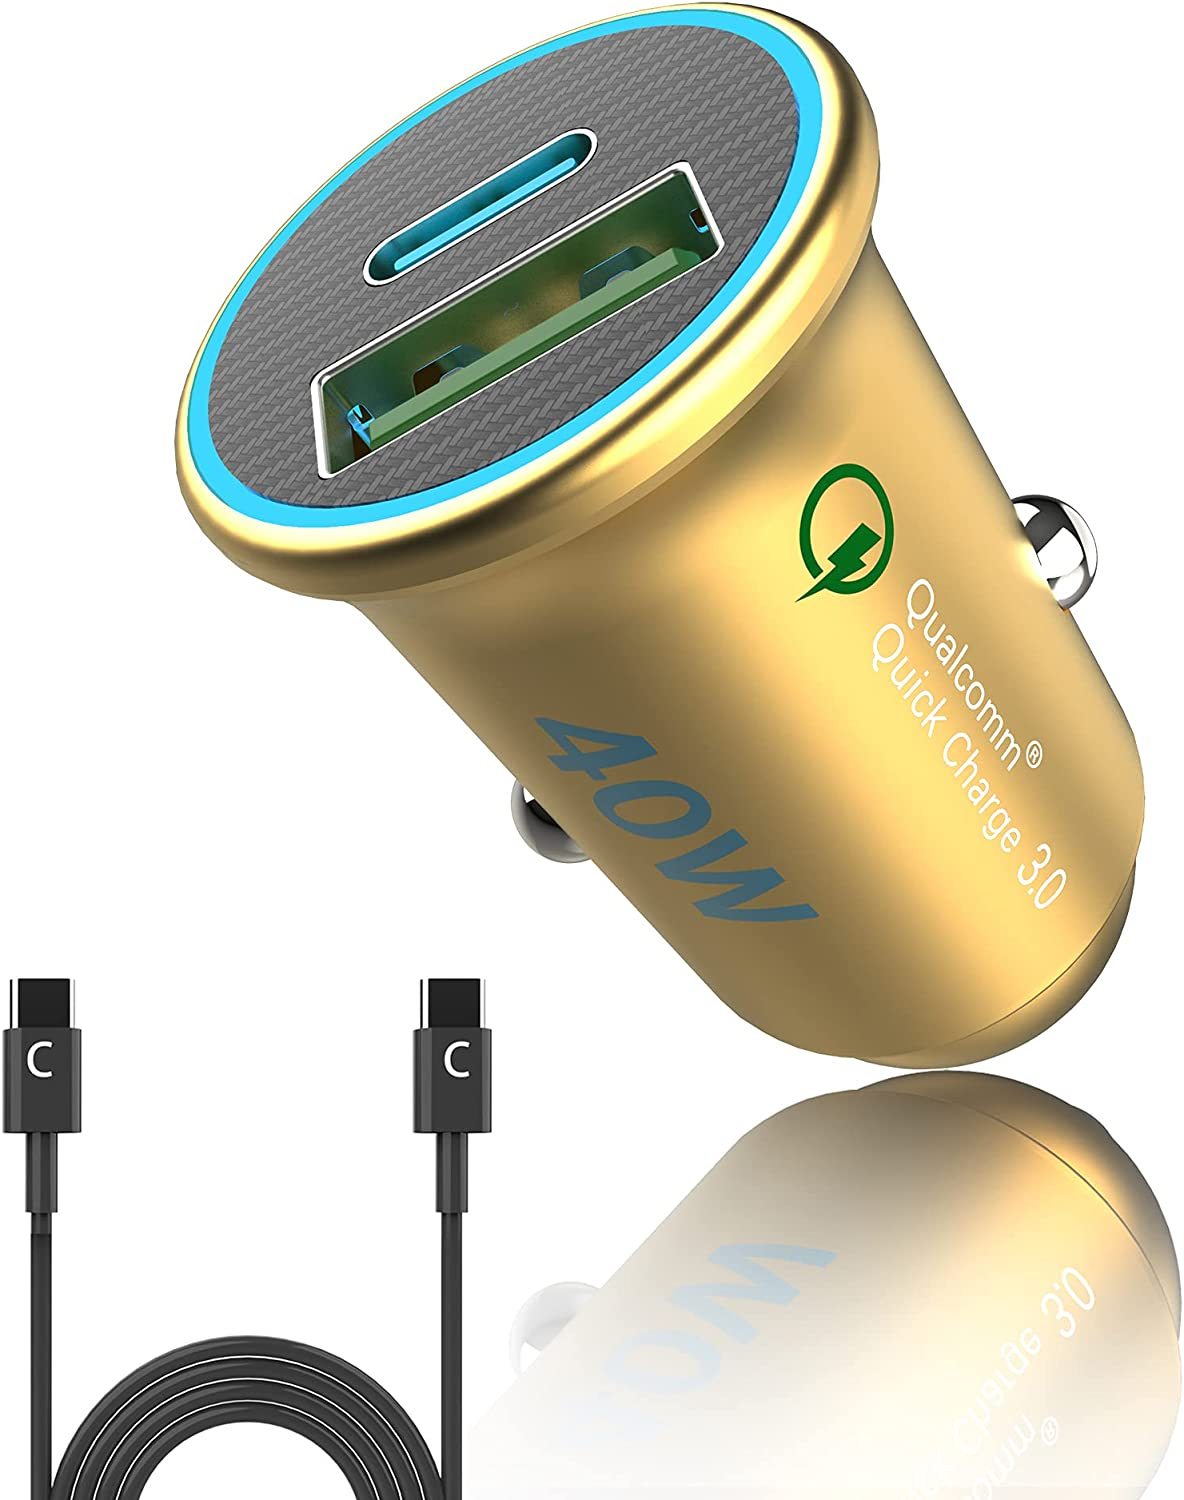 USB C Car Charger 40W Fast Car Cigarette Lighter Adapter PD&QC 3.0 Dual Port Mini All Metal Compatible with iPhone 12/12 Pro/Max/12 Mini/iPhone 11/Pro/Max/XR/XS/Max/8, Galaxy S21/20/10/9